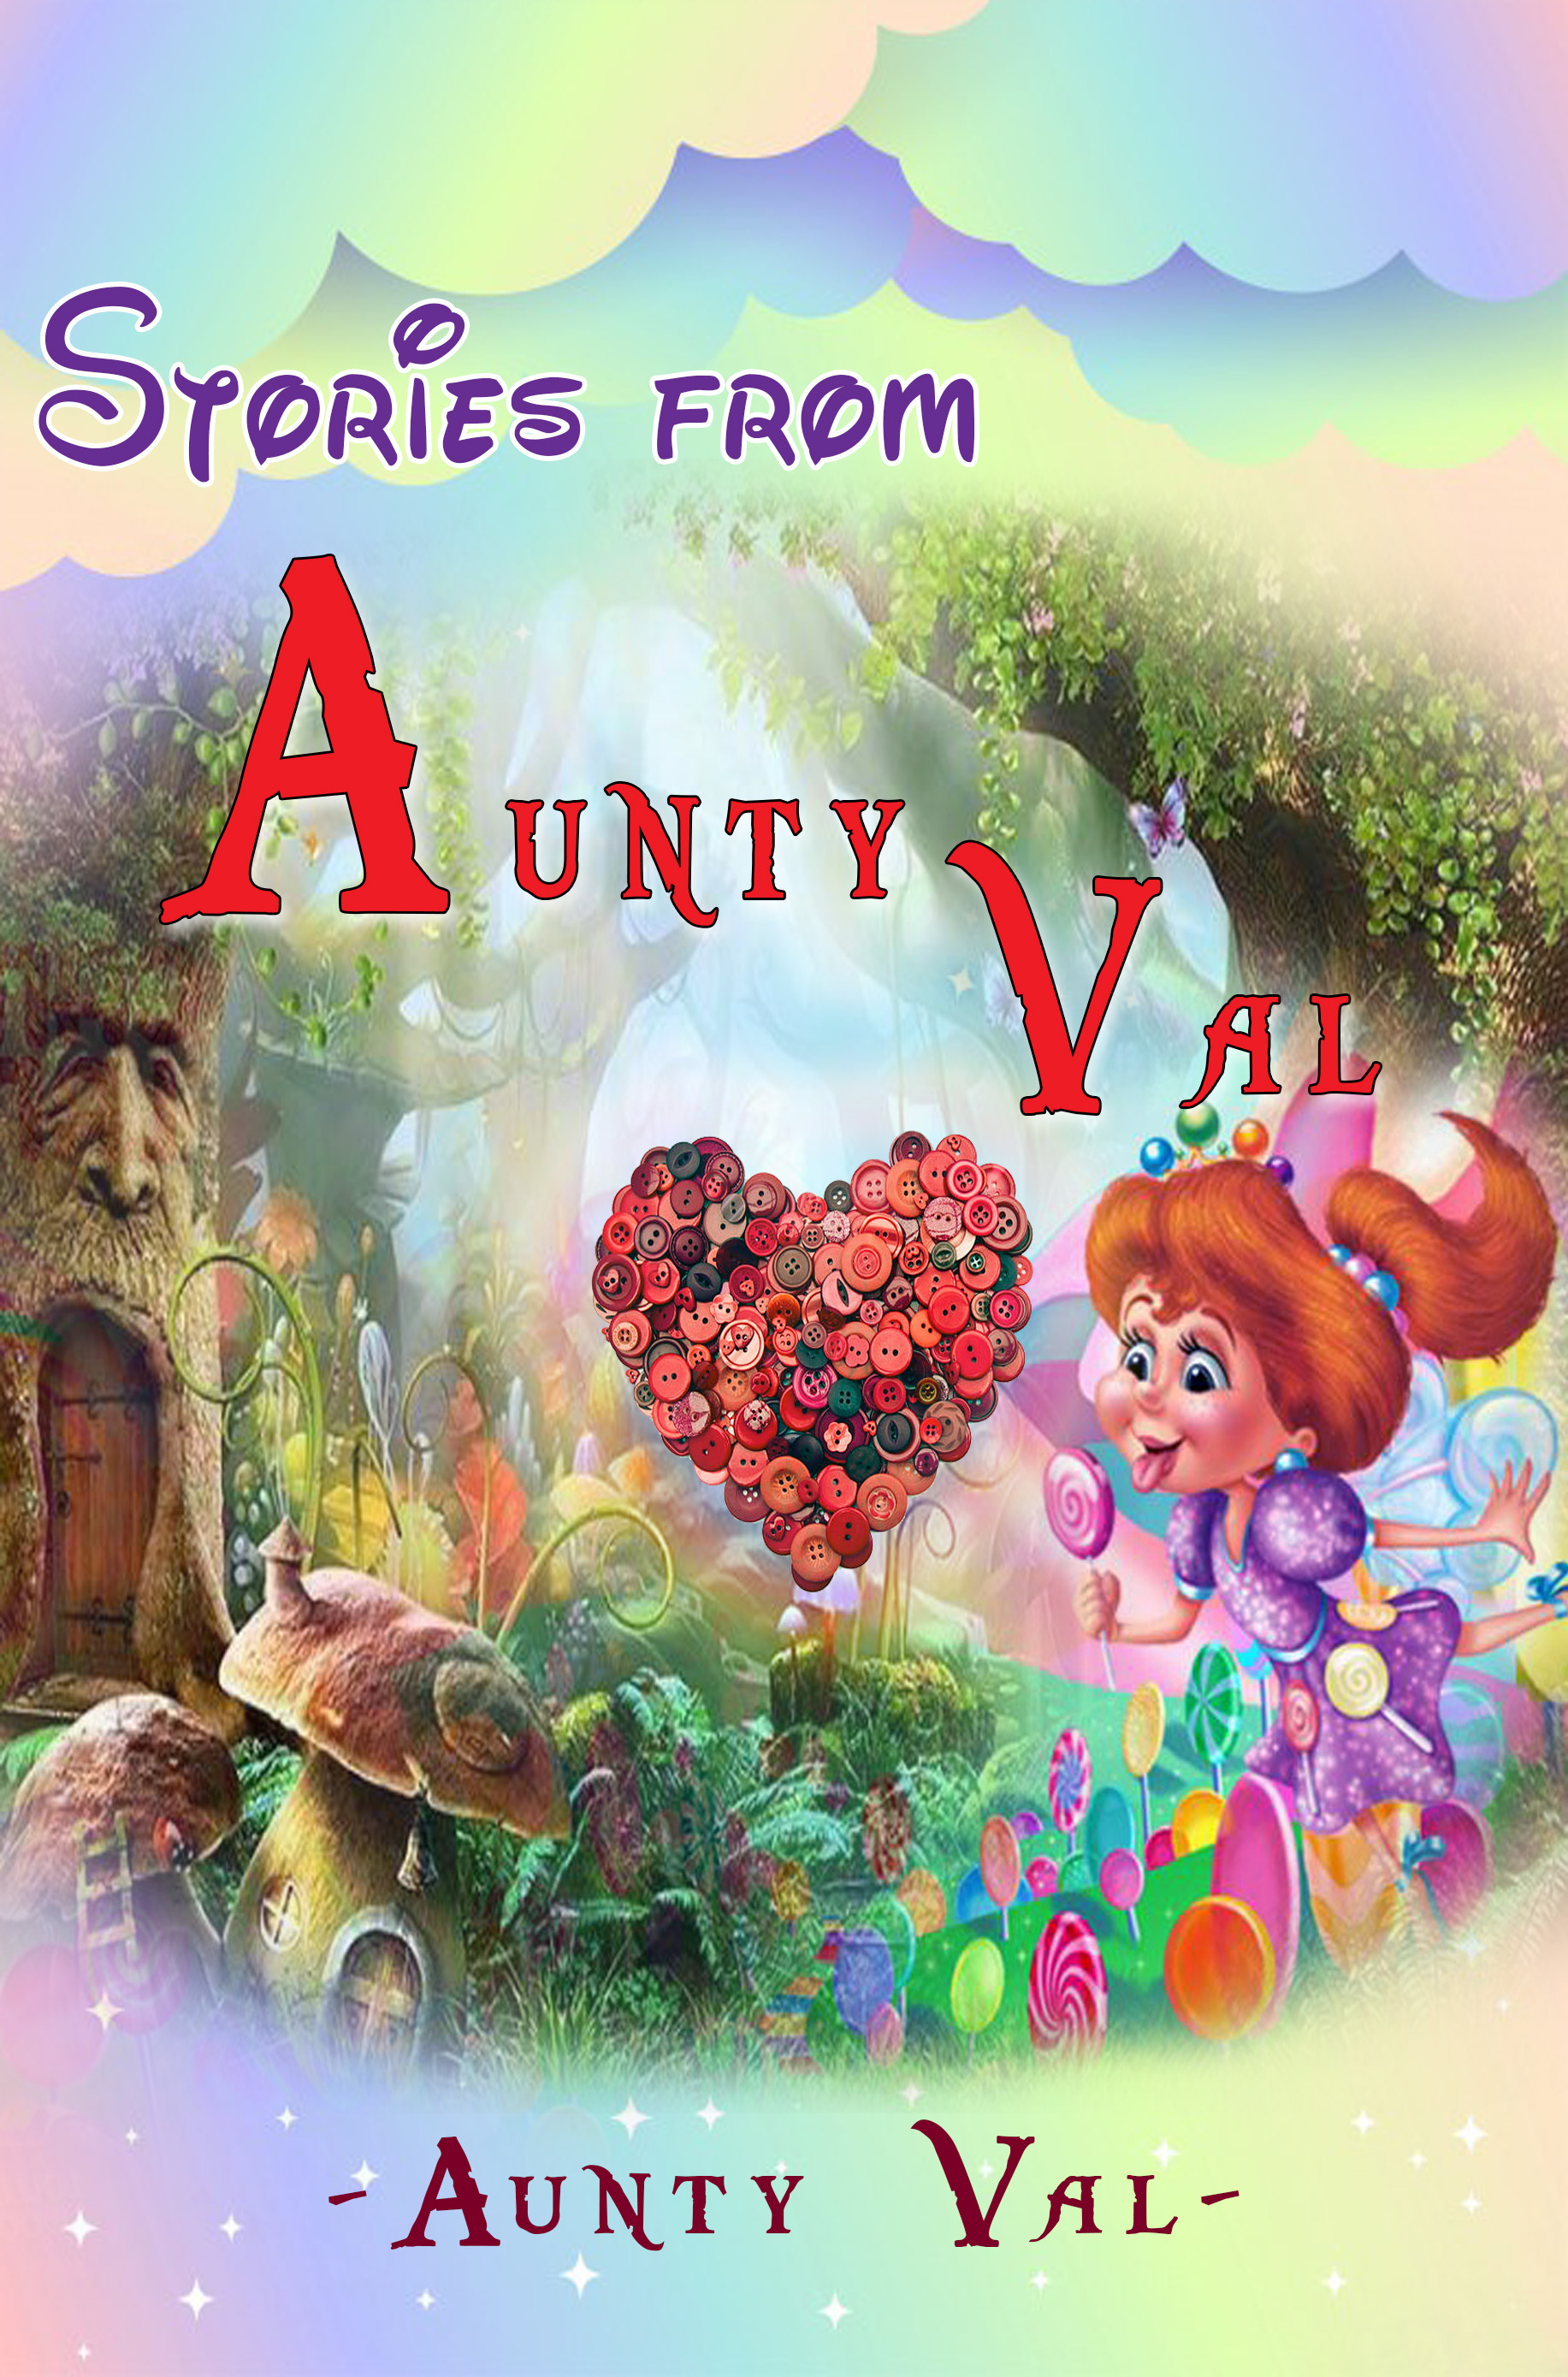 STORIES FROM AUNTY VAL